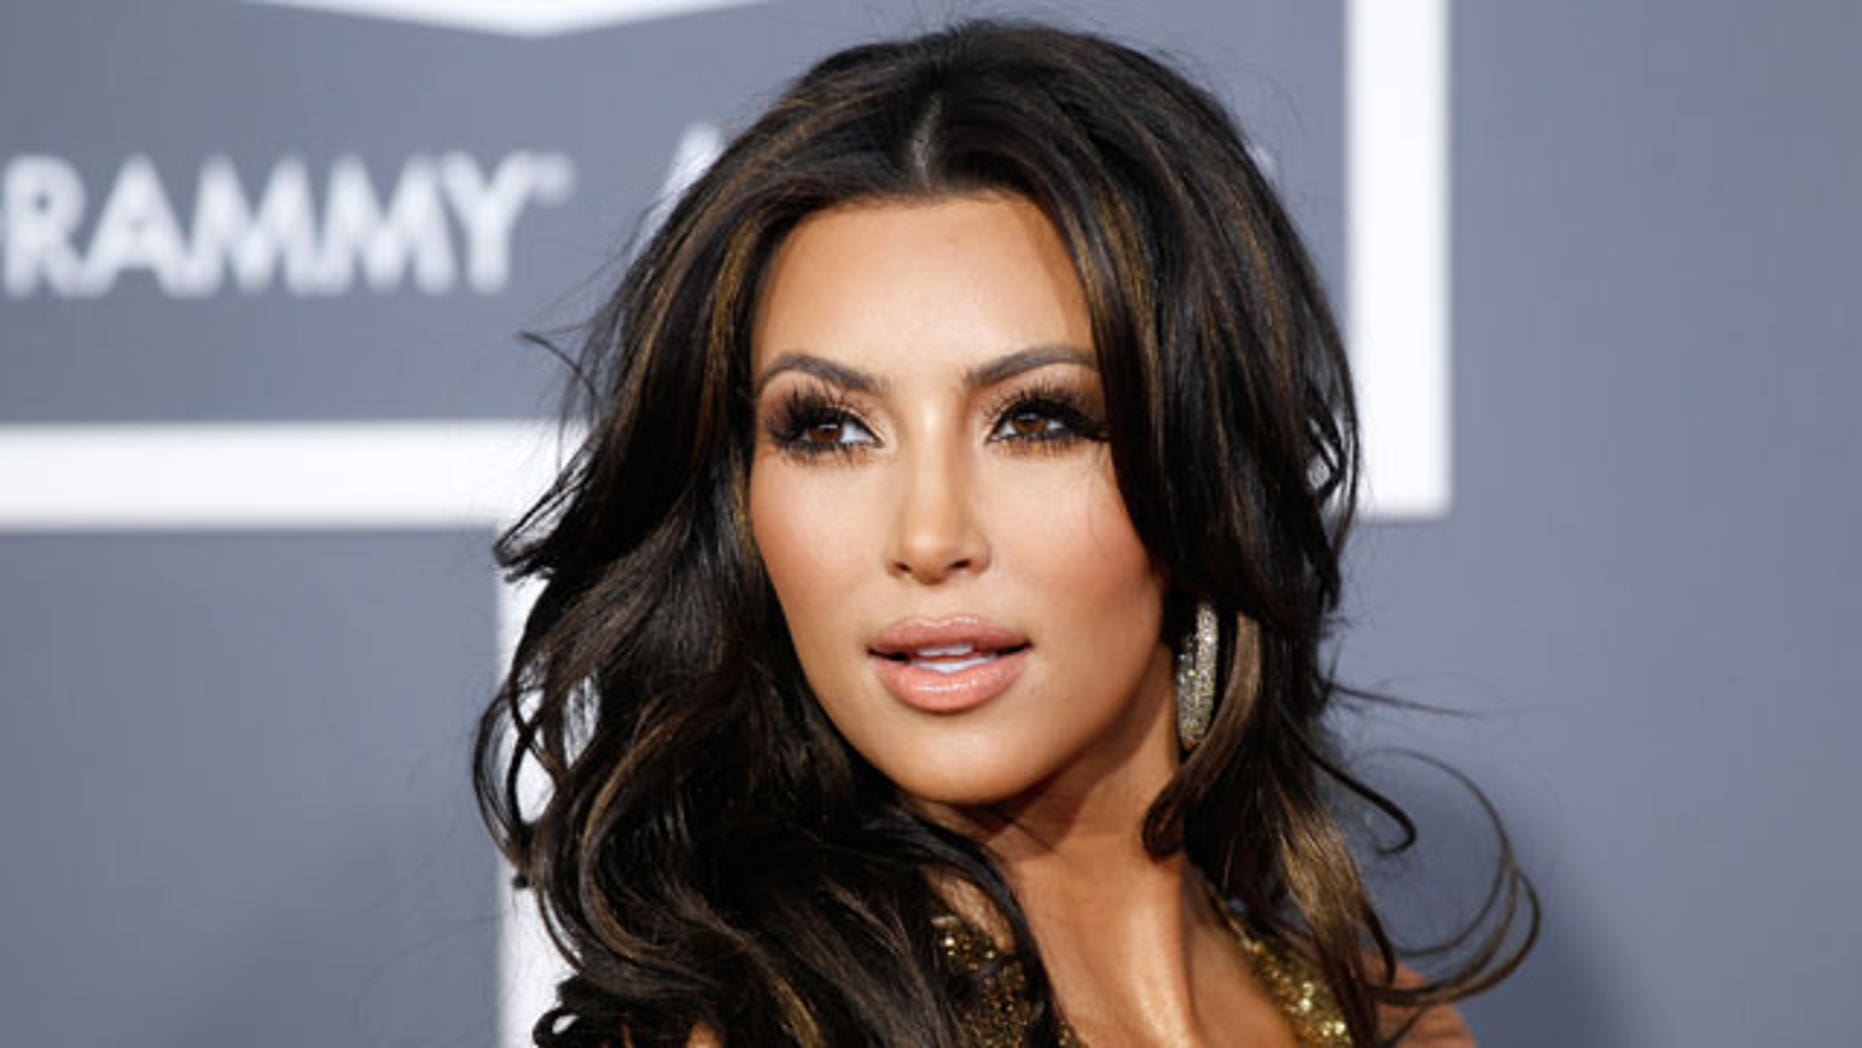 TV personality Kim Kardashian arrives at the 53rd annual Grammy Awards in Los Angeles